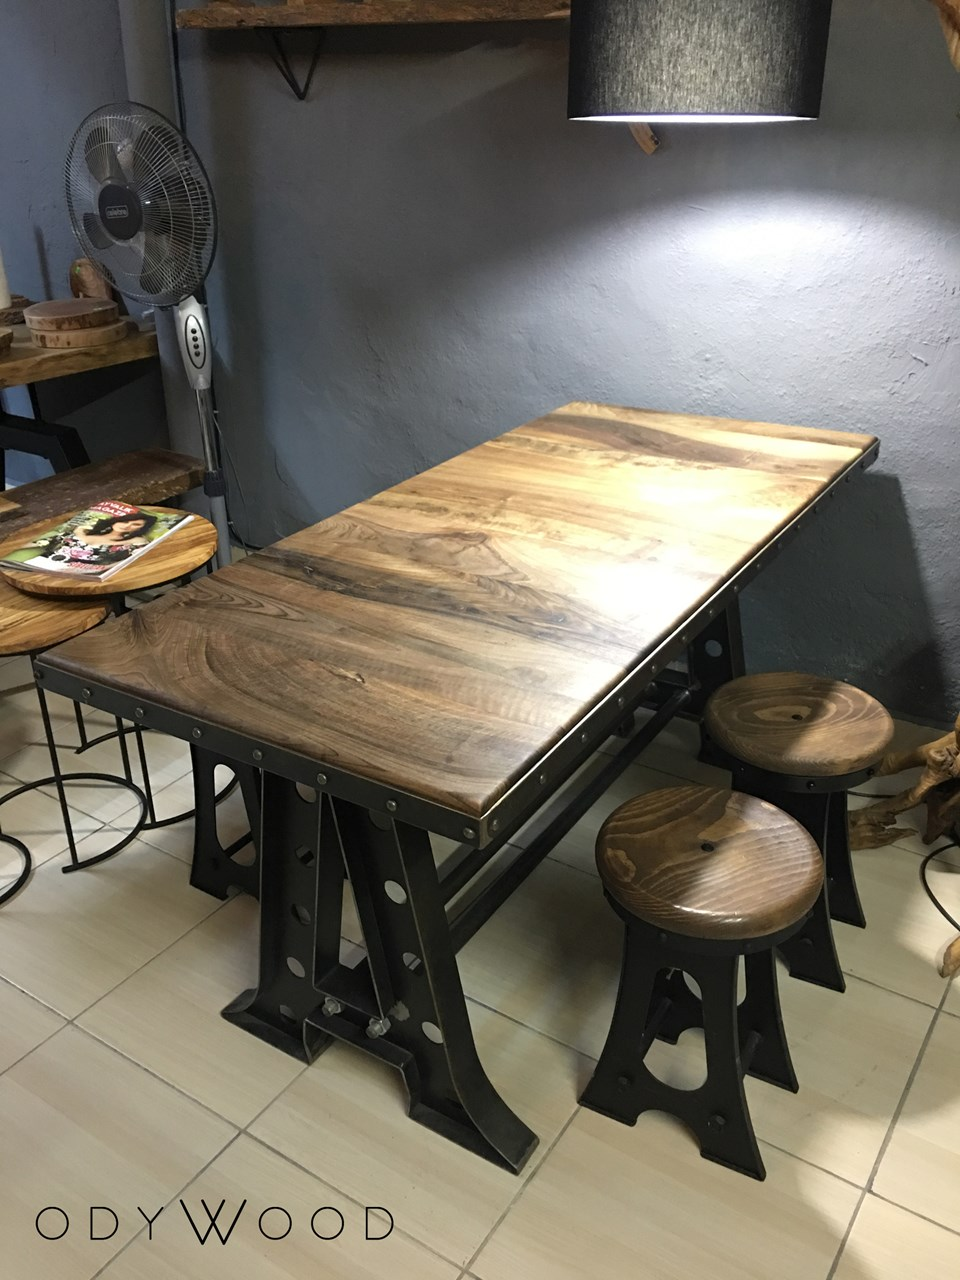 ROCK! Walnut Industrial Dining Table'in resmi